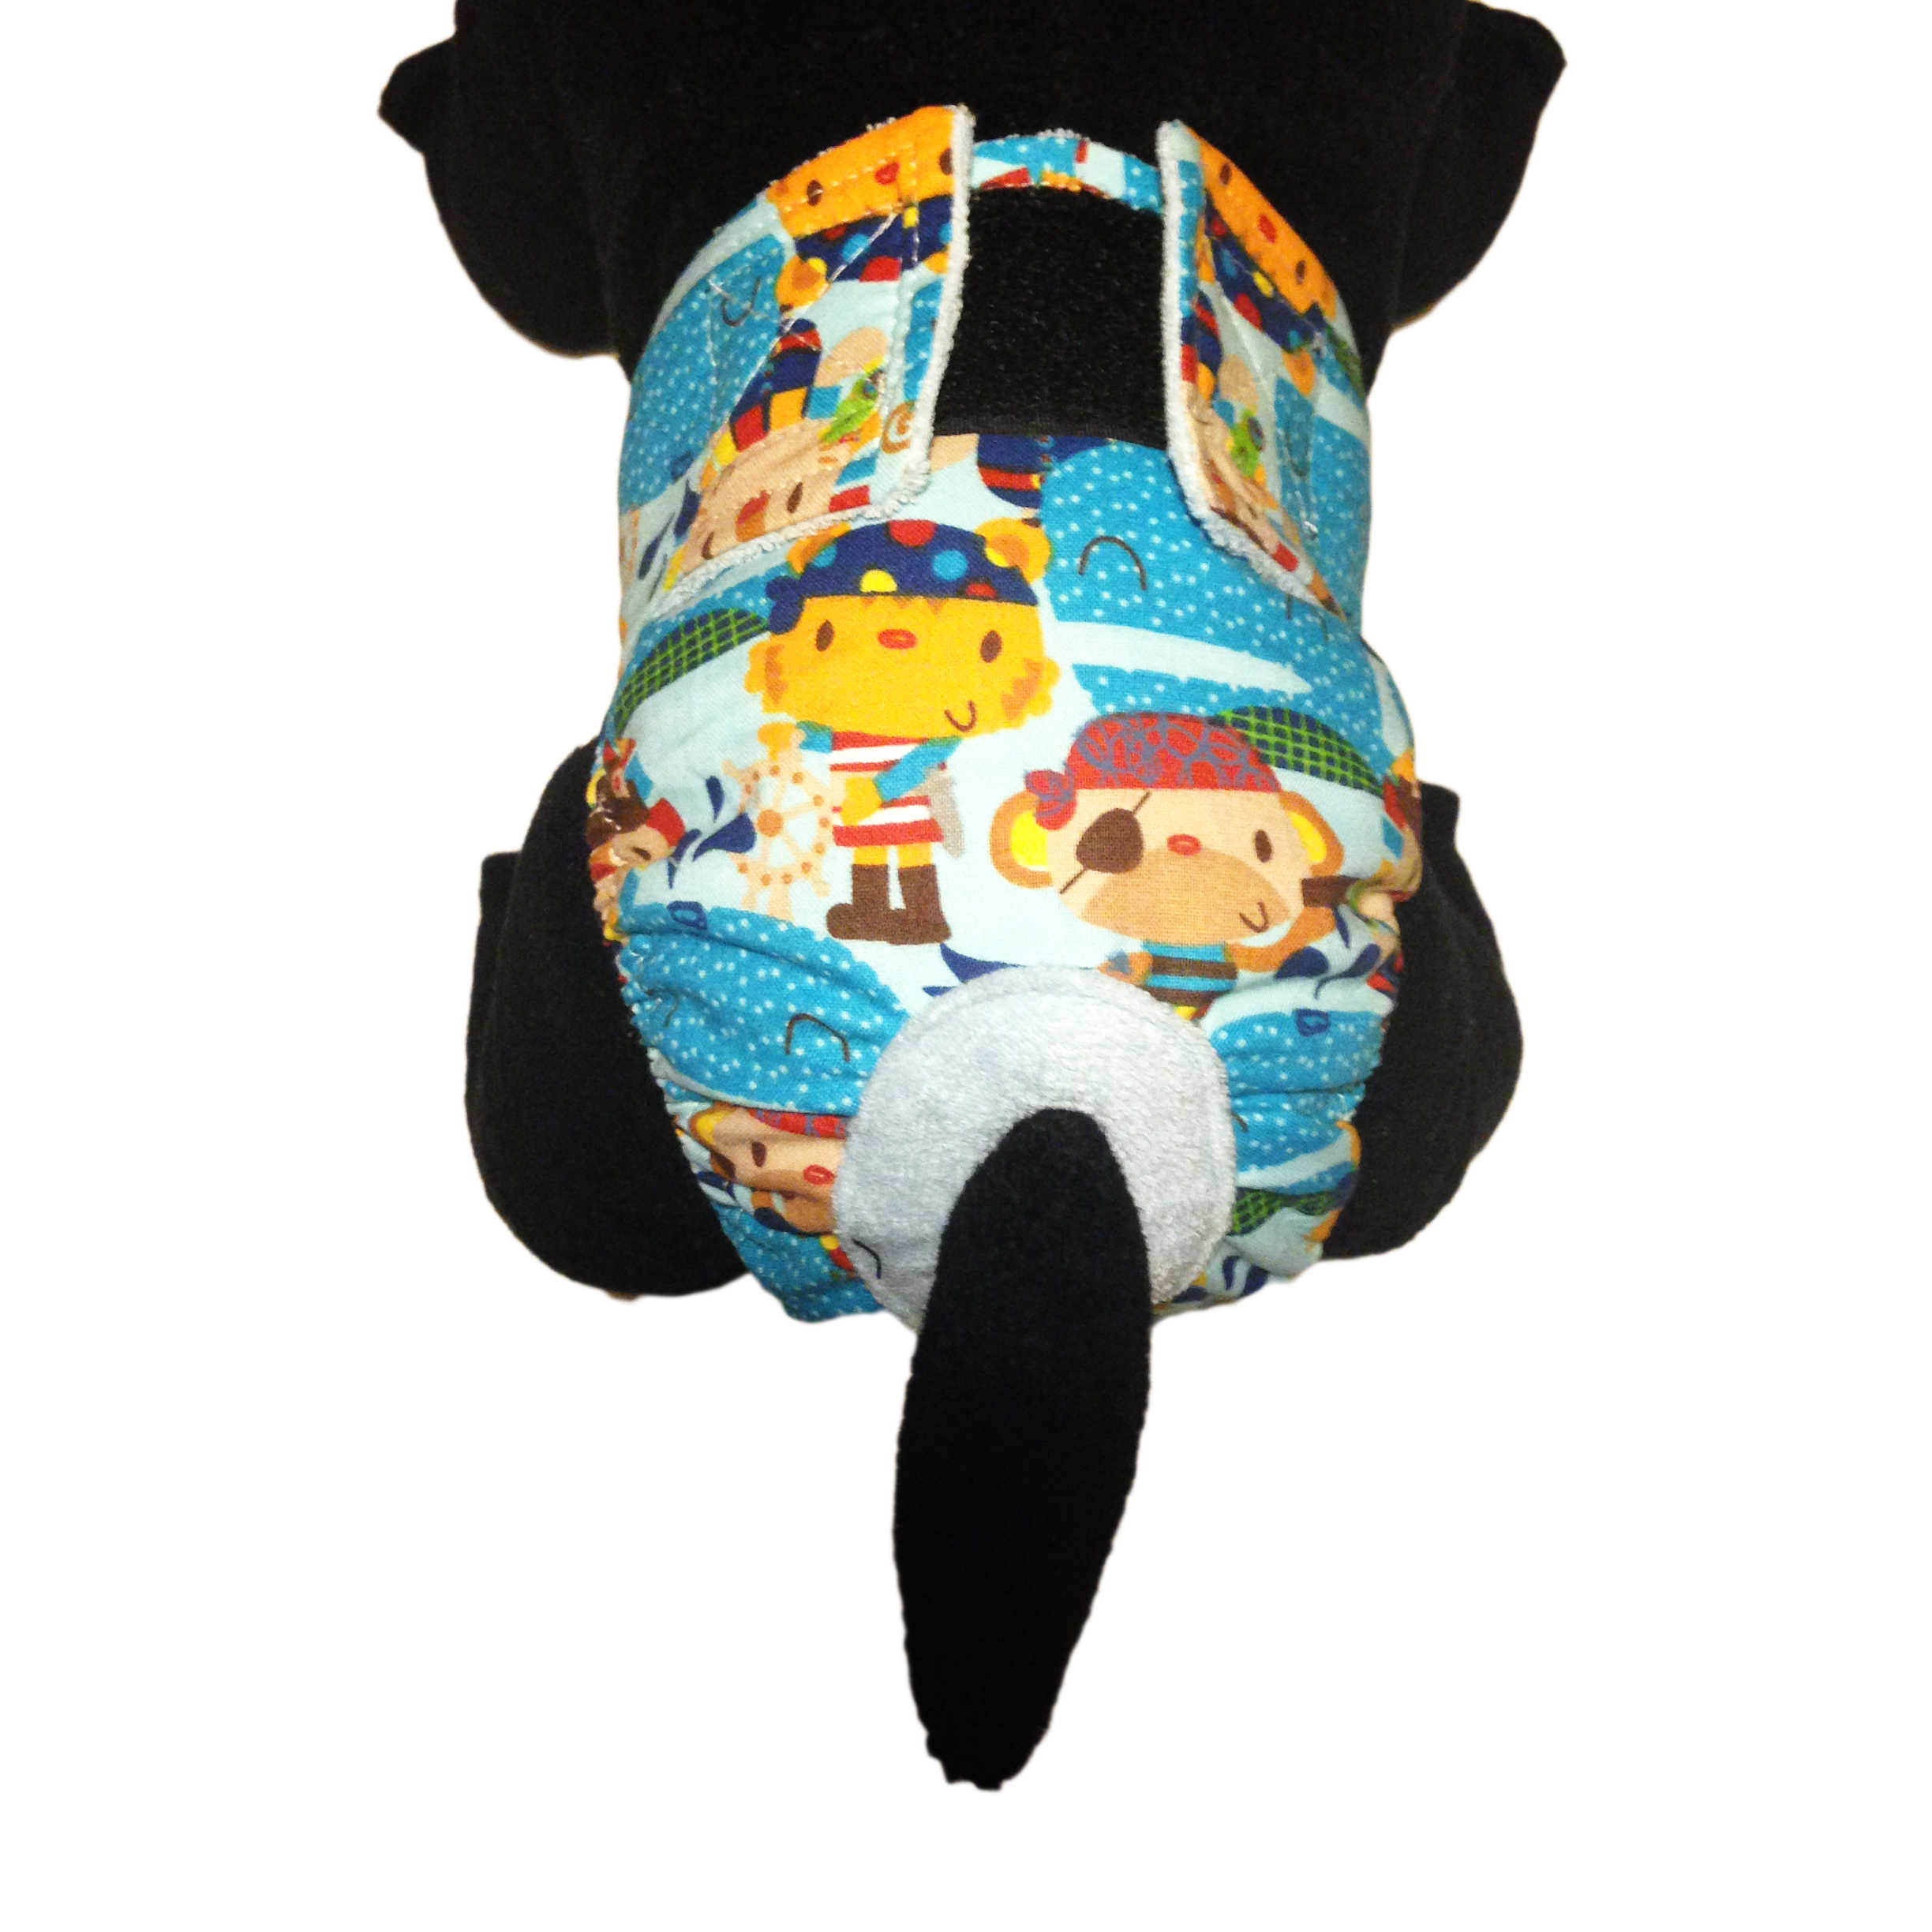 barkertime pirates adventure washable cat diaper made in usa. Black Bedroom Furniture Sets. Home Design Ideas